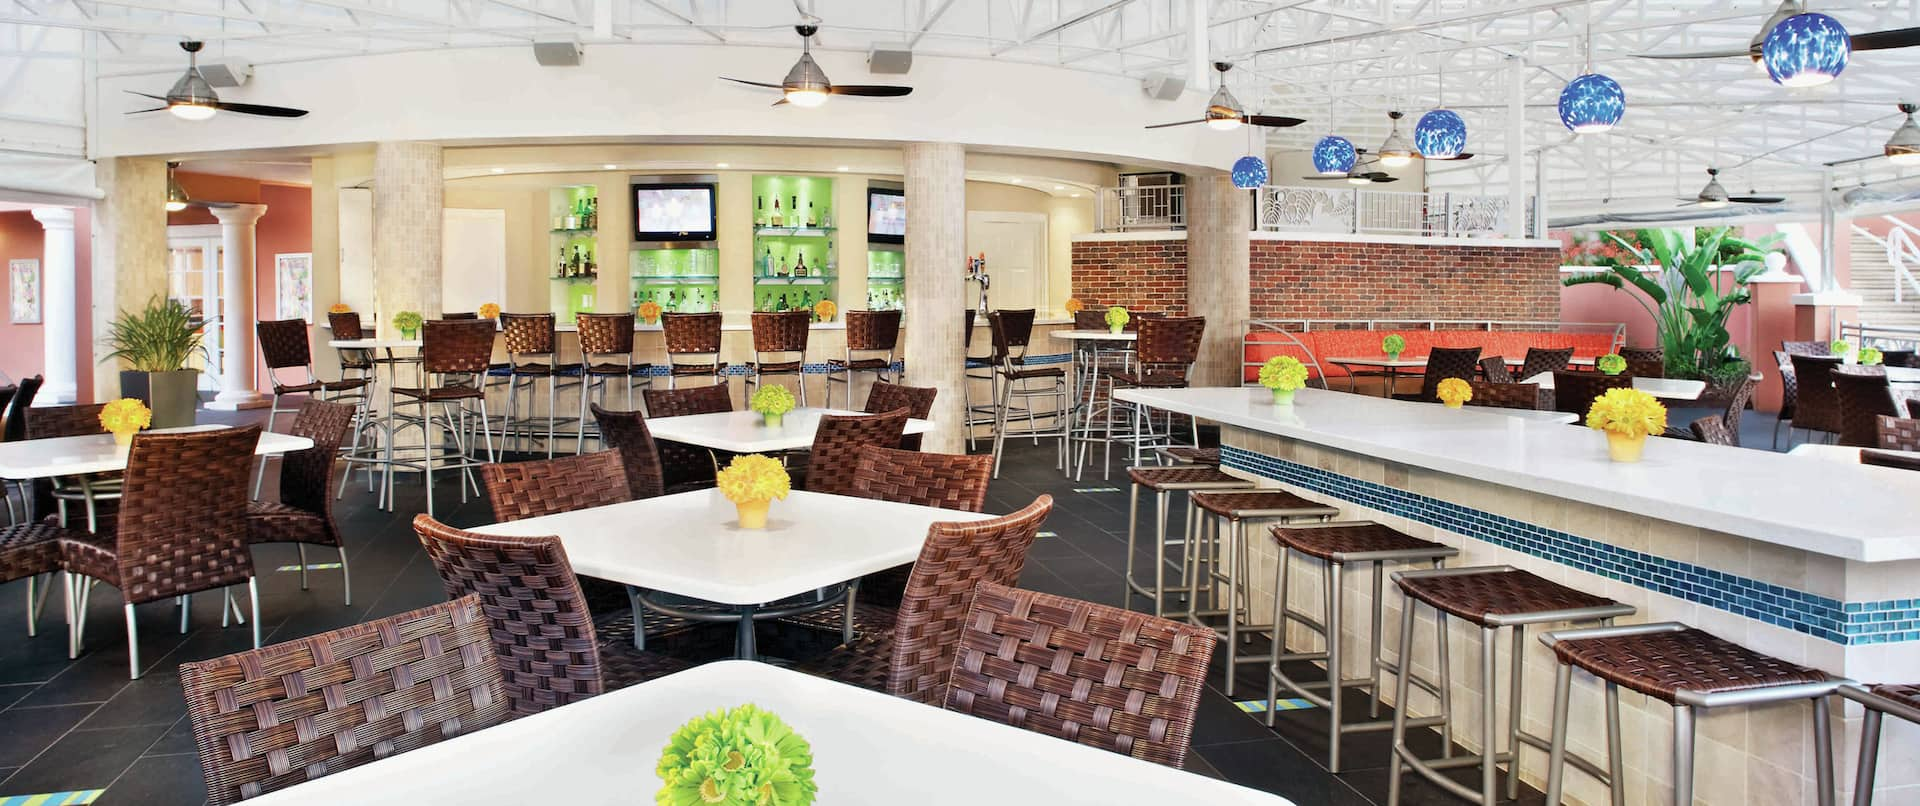 Coral Reef Bar and Grille Seating